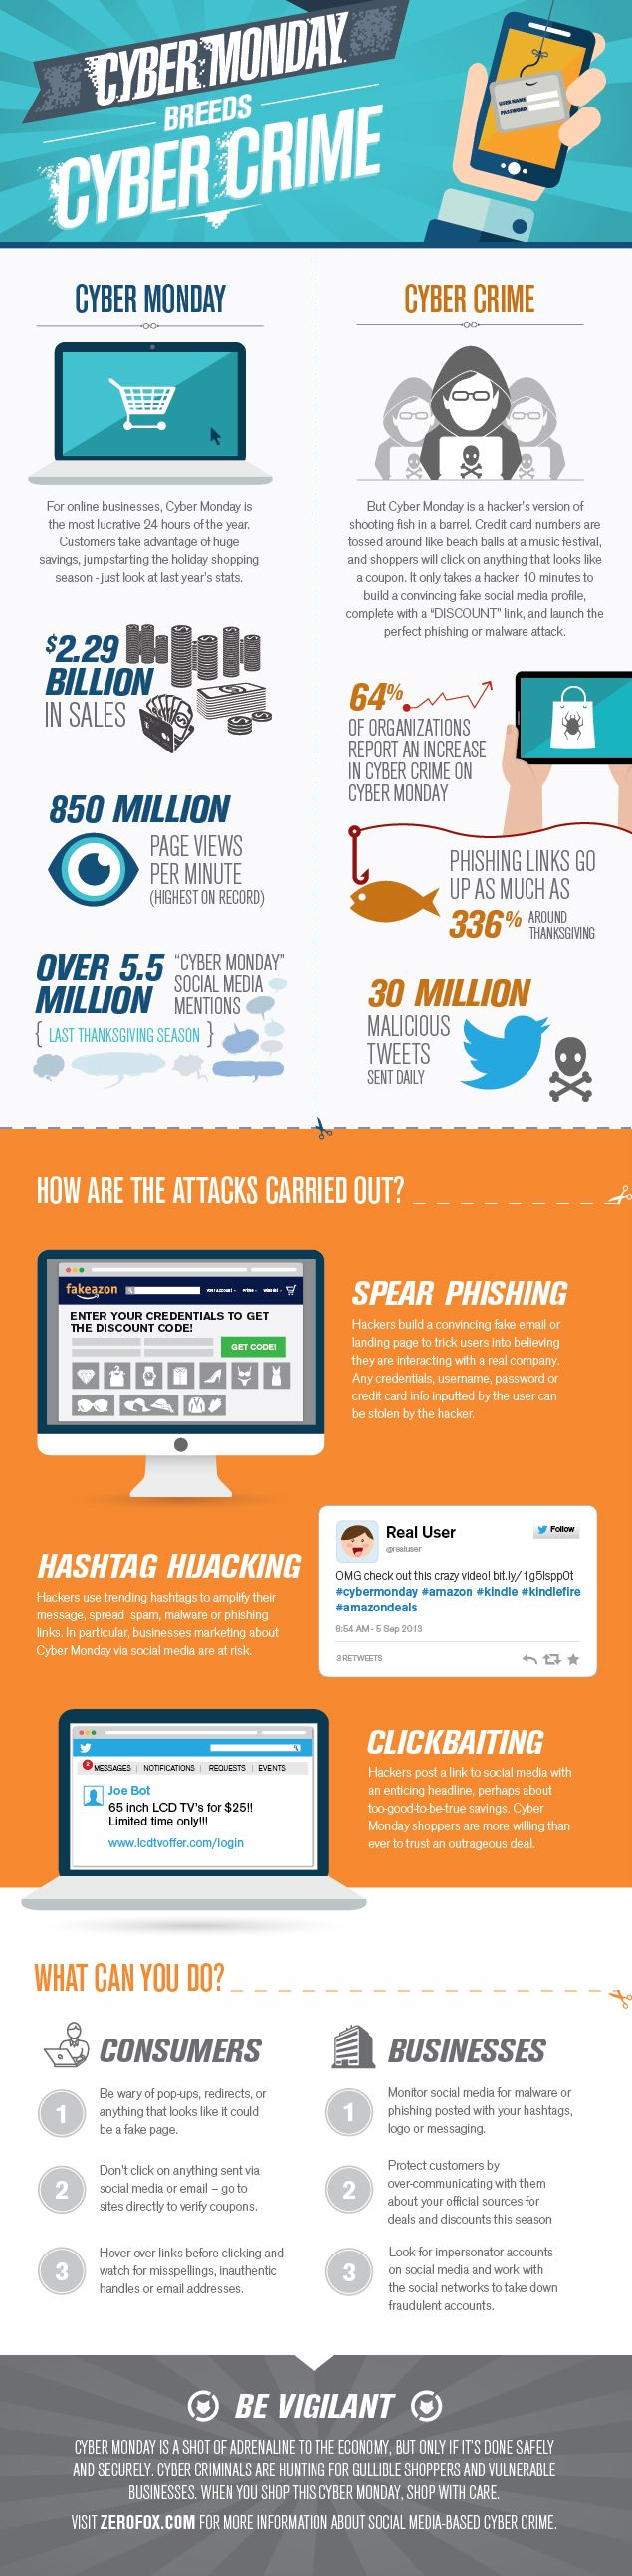 How Hackers Will Attack on Cyber Monday (Infographic) | Inc.com